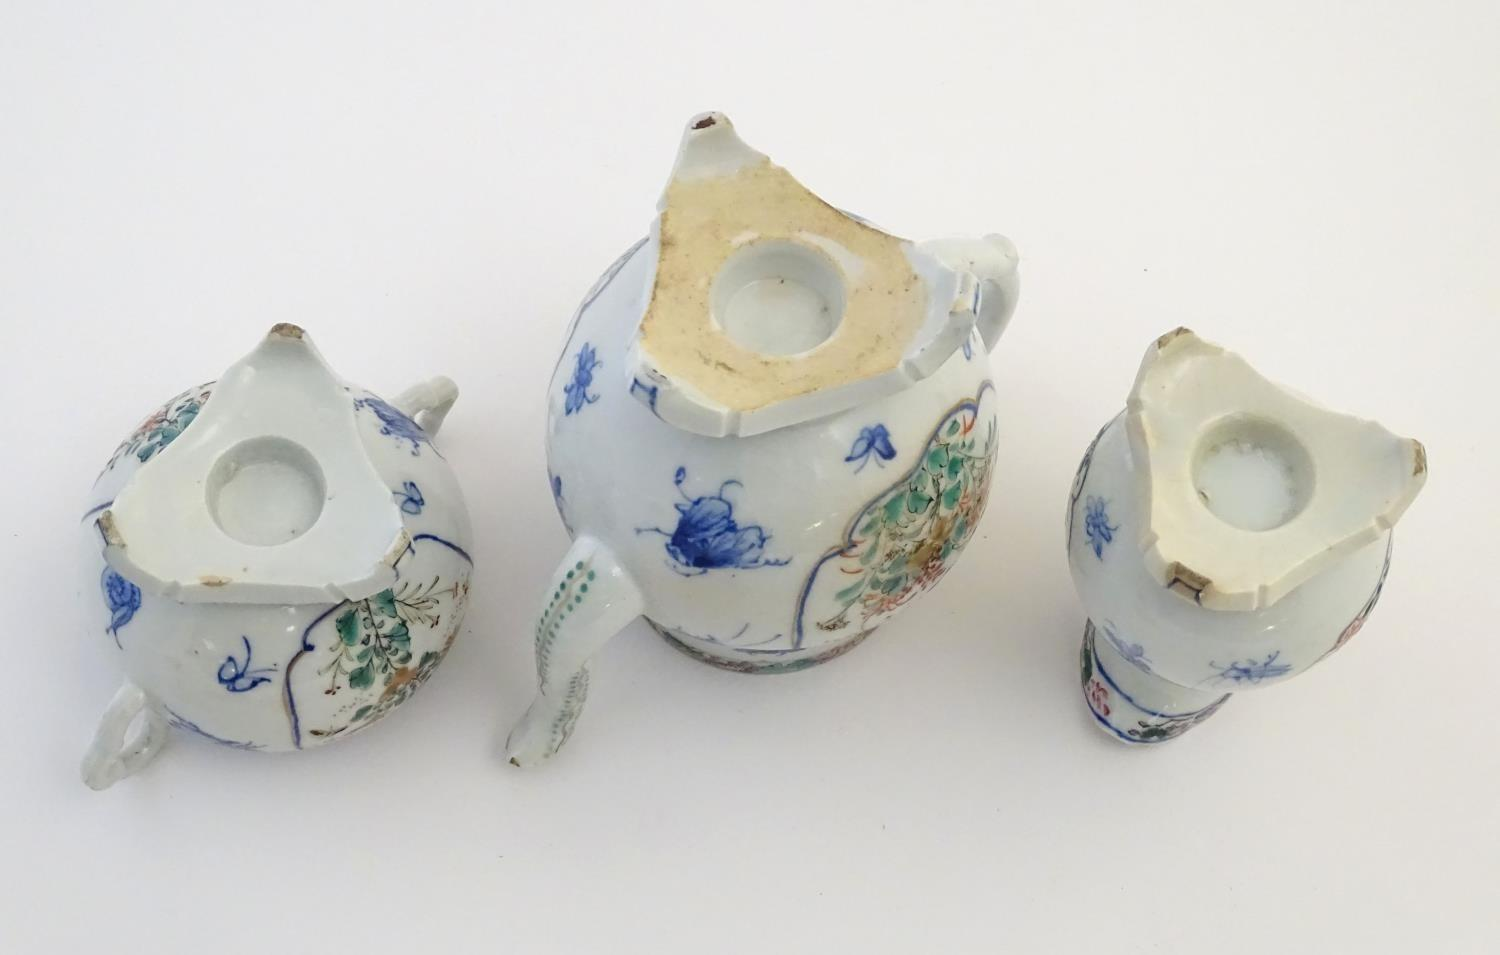 A Japanese teapot, twin handled sugar bowl and milk jug decorated with hand painted insects and - Image 2 of 8